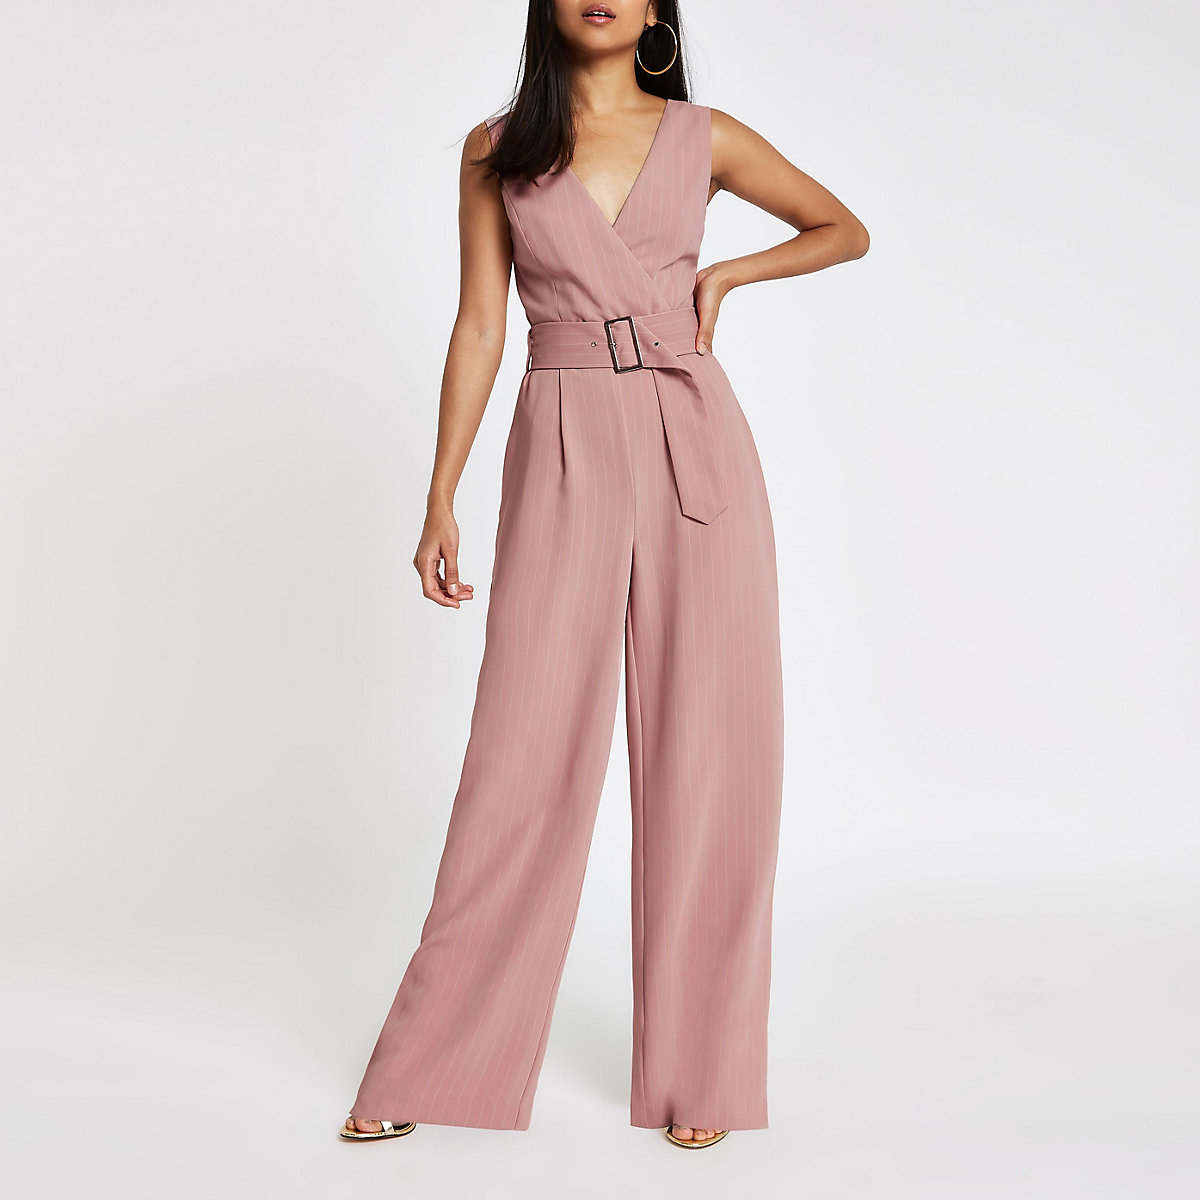 Petite Pink Belted Wide Leg Jumpsuit Jumpsuits Rompers